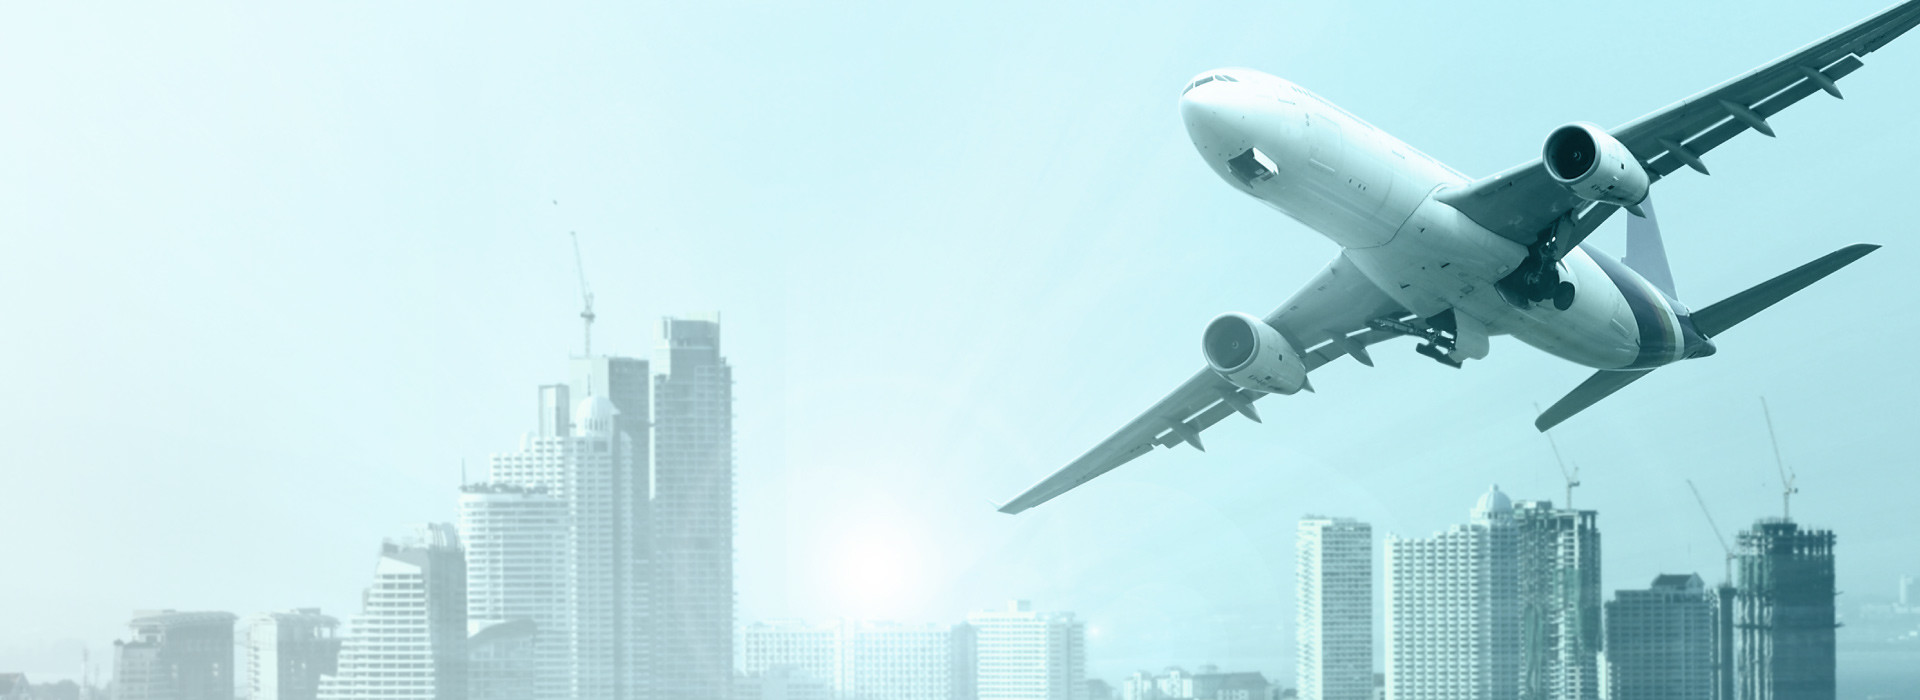 Air Freight Customs Clearance & Forwarding Services Hero Image